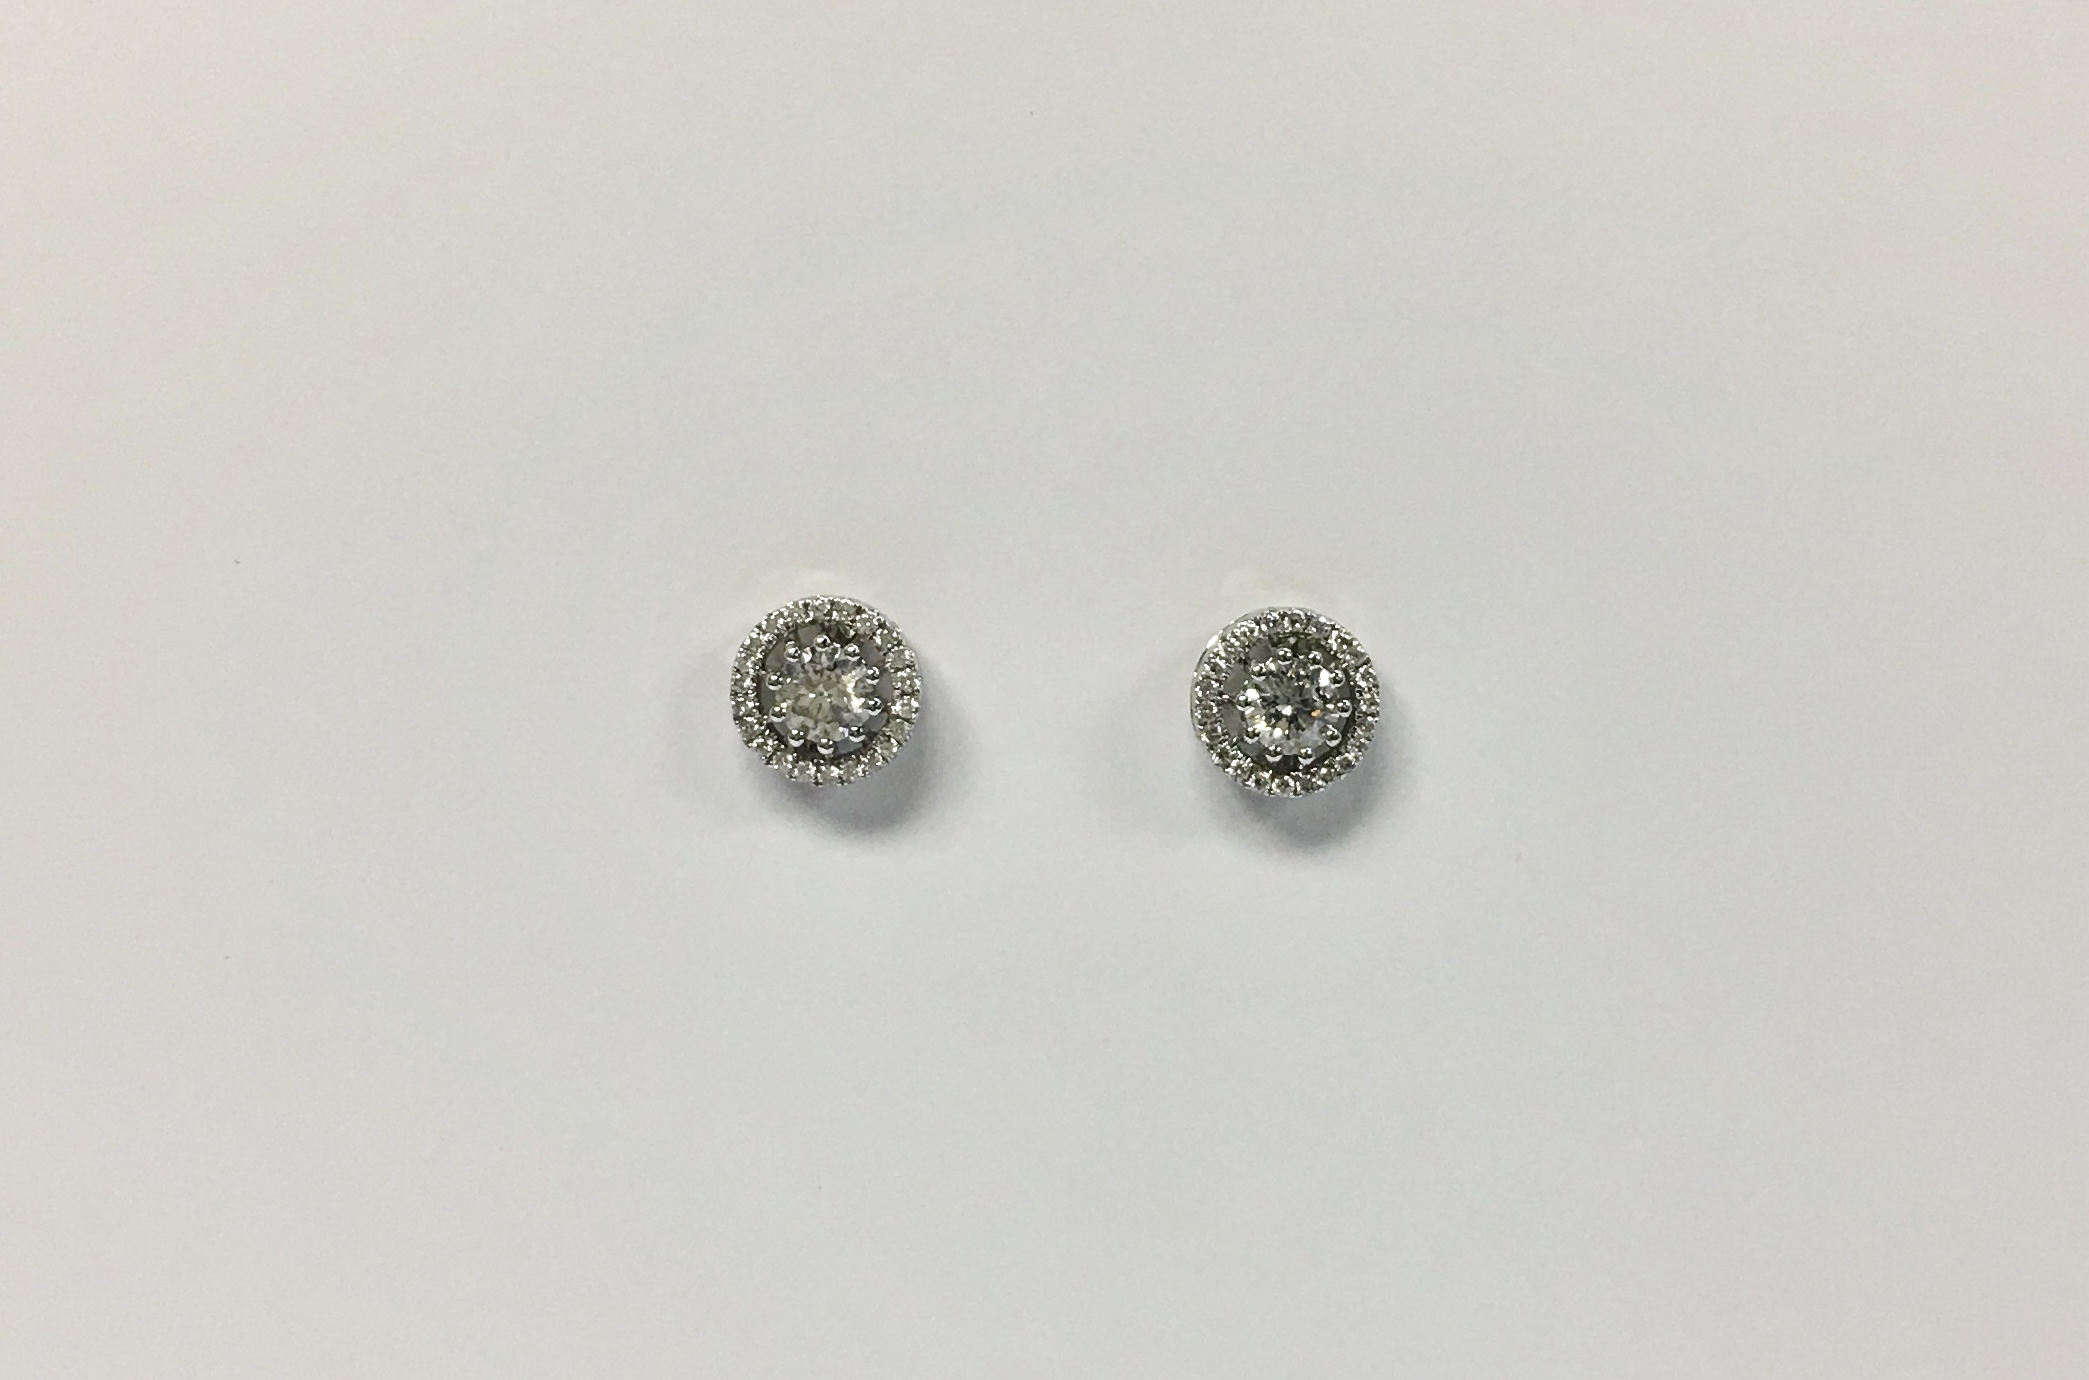 Extravagant 18K White Gold Diamond Earrings